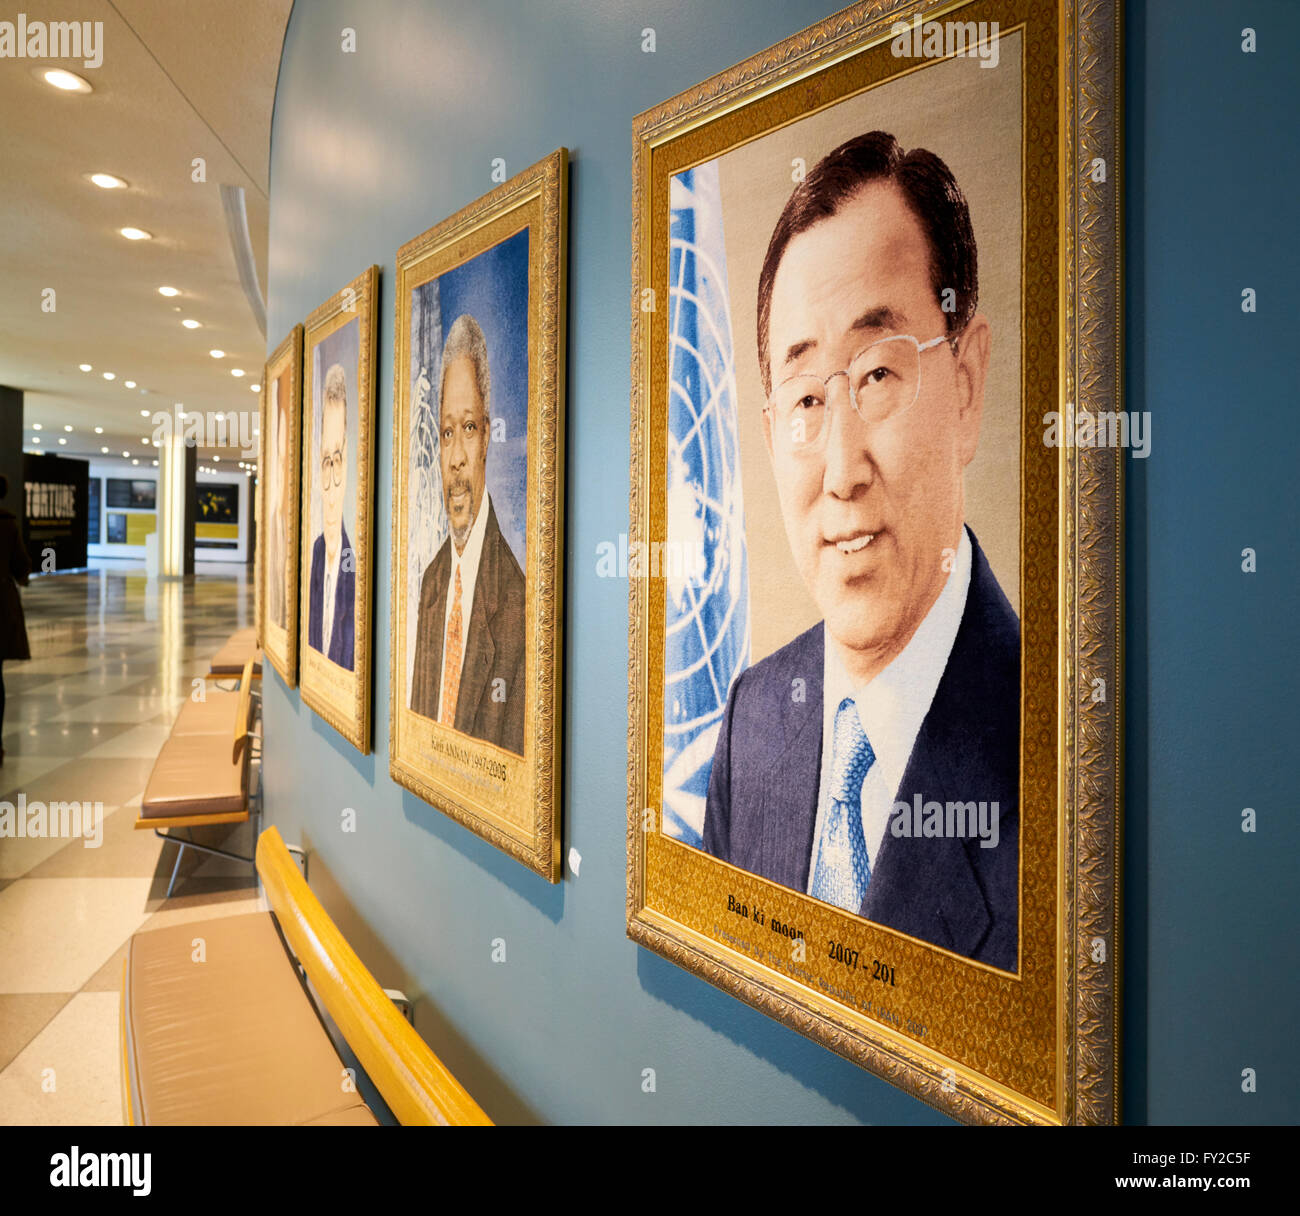 Paintings depicting the Former Secretaries General of the United Nations. United Nations Headquarters Manhattan - Stock Image